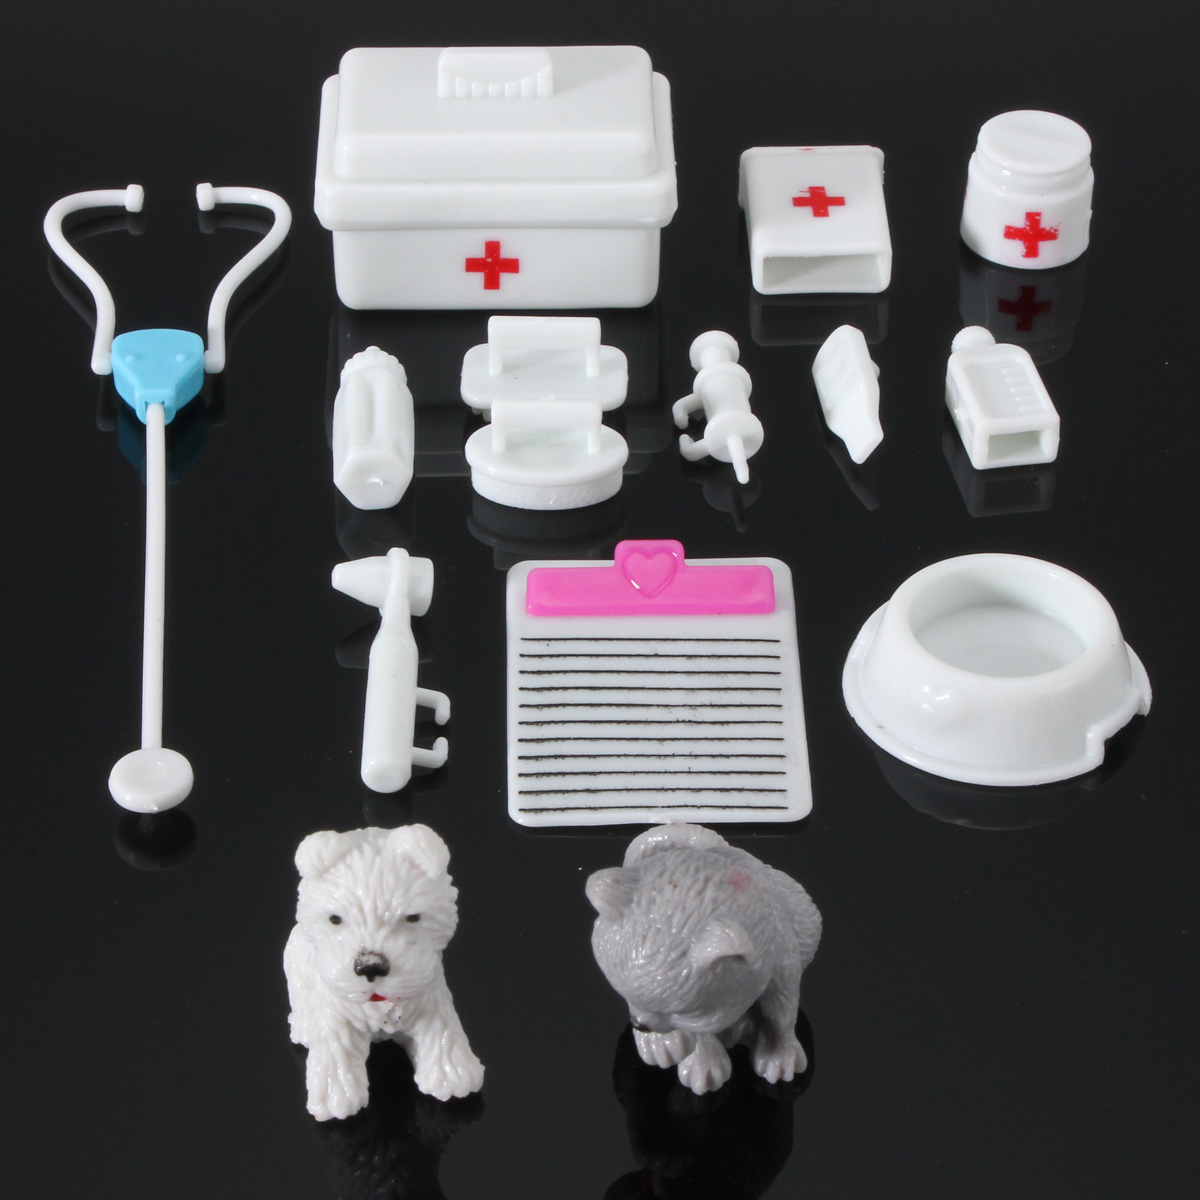 14Pcs Mini Medical Equipment Toys Kids Doctor Kit For Barbie Fashion Doll Accessories Set Gift New